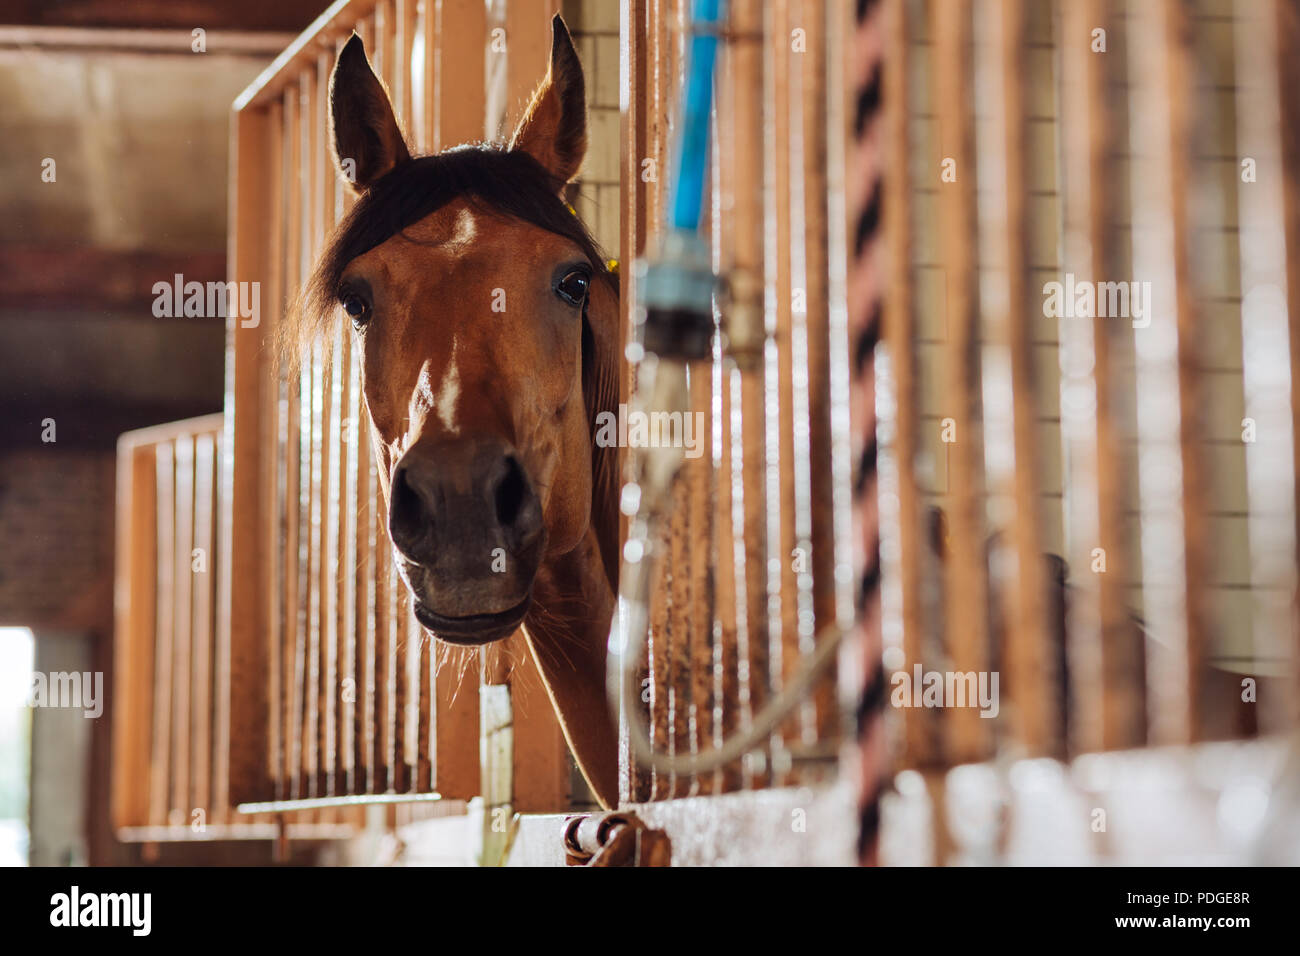 Gentle beautiful racing horse standing in famous spacious stable - Stock Image